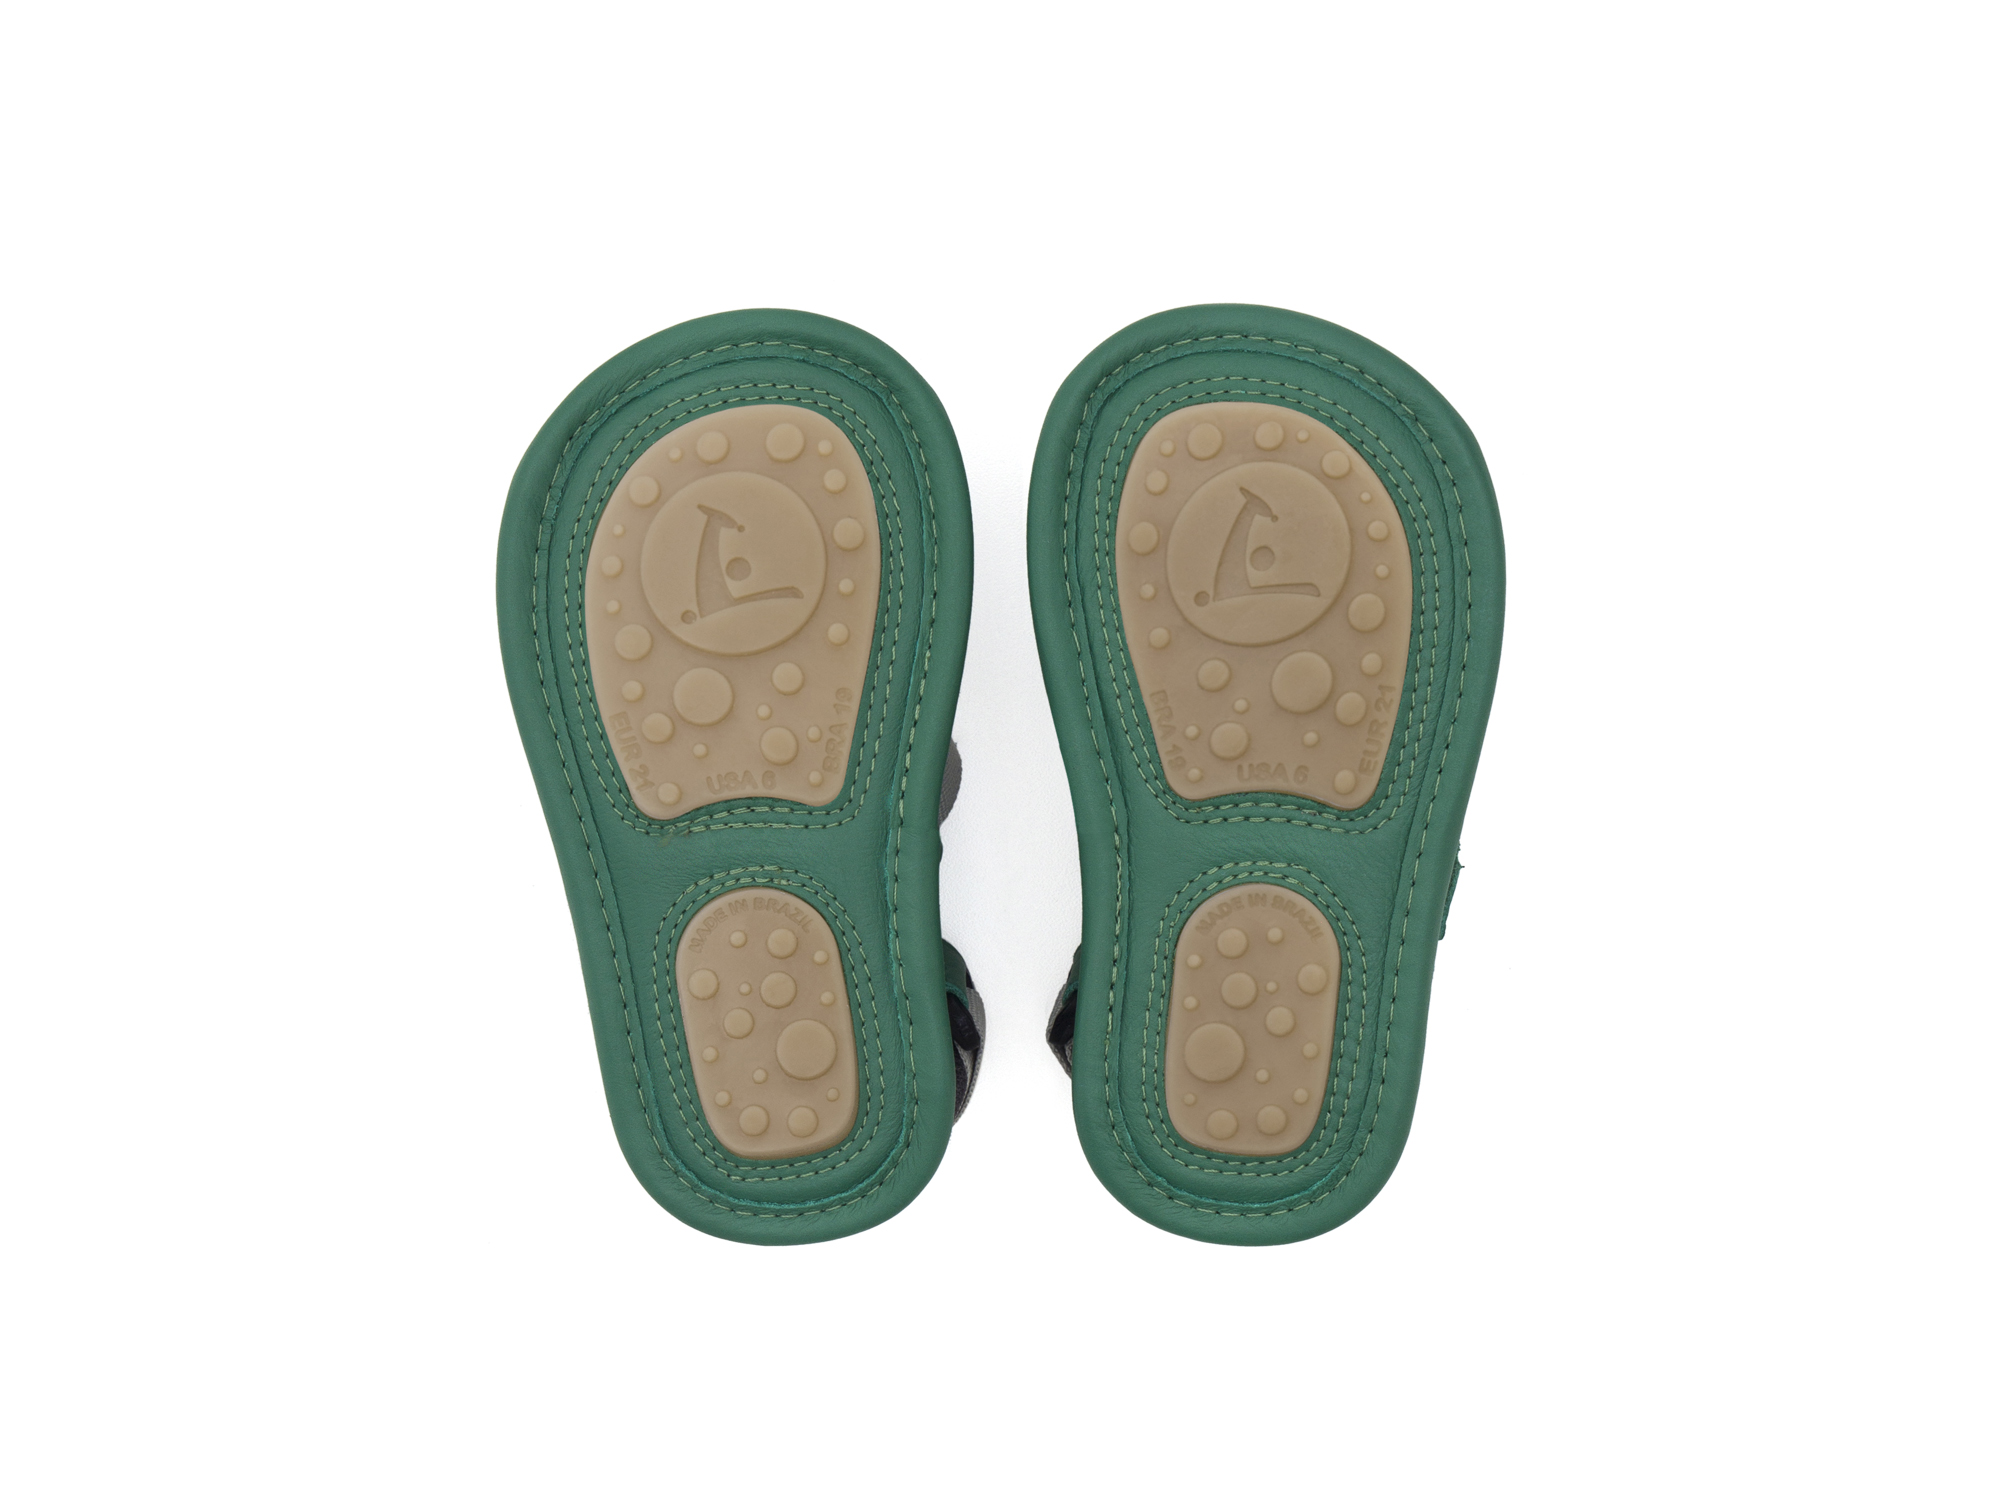 Sandal Boardy Green Palm/ Green Leaf Baby for ages 0 to 2 years - 3